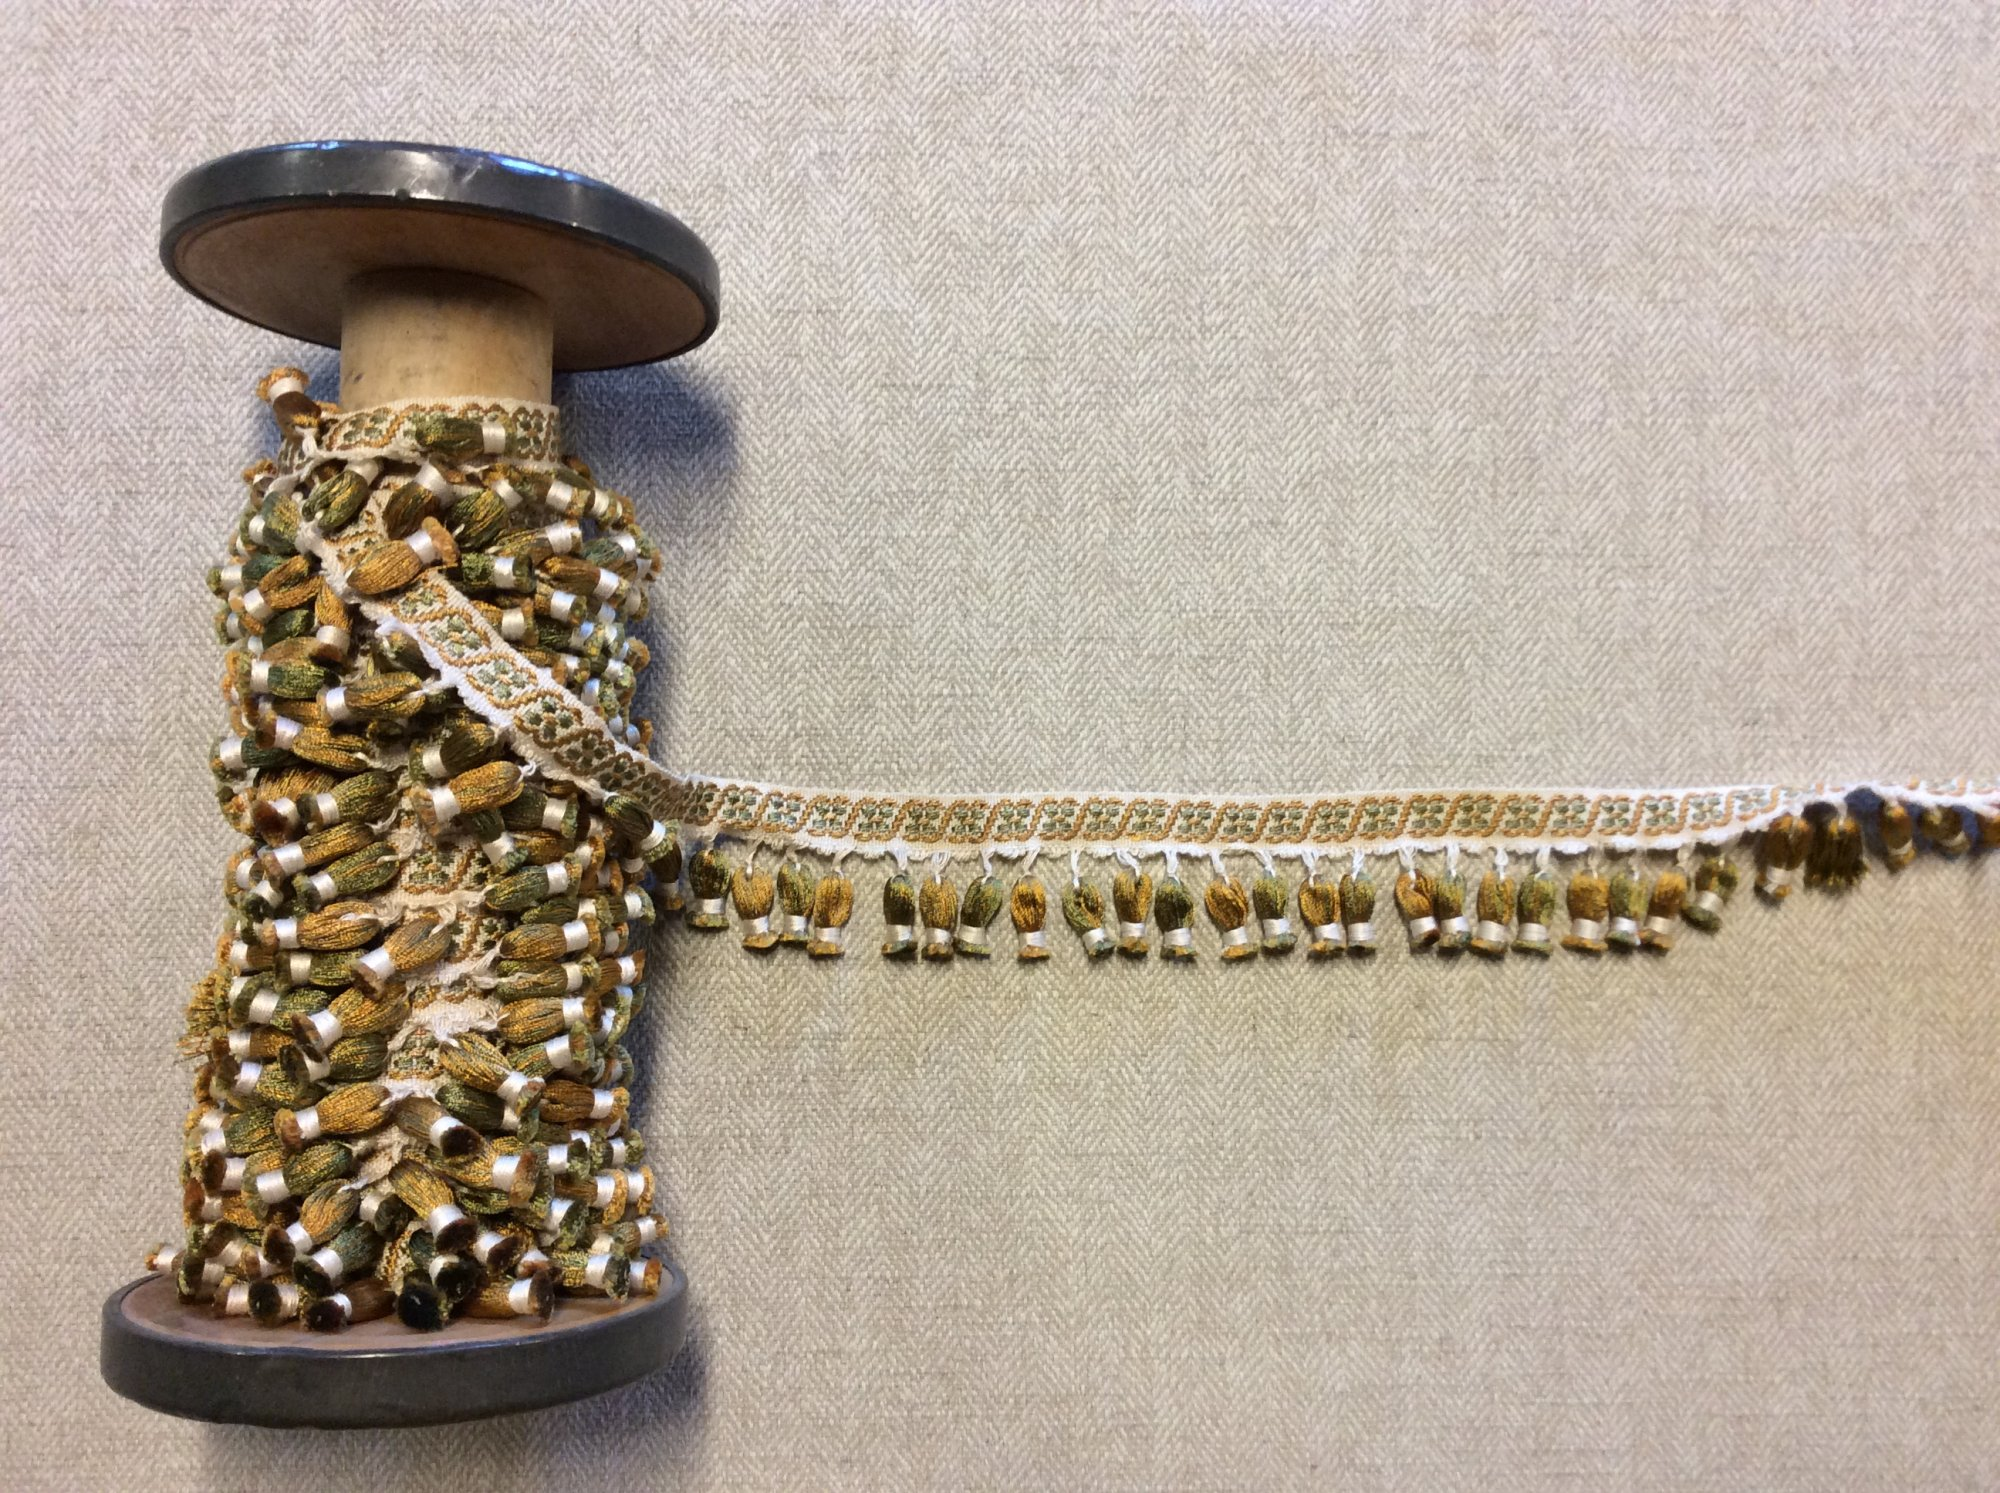 Vintage Gold and Green Onion Tassel Trim with Woven Floral Tape Home Decor Trim TRIM1048